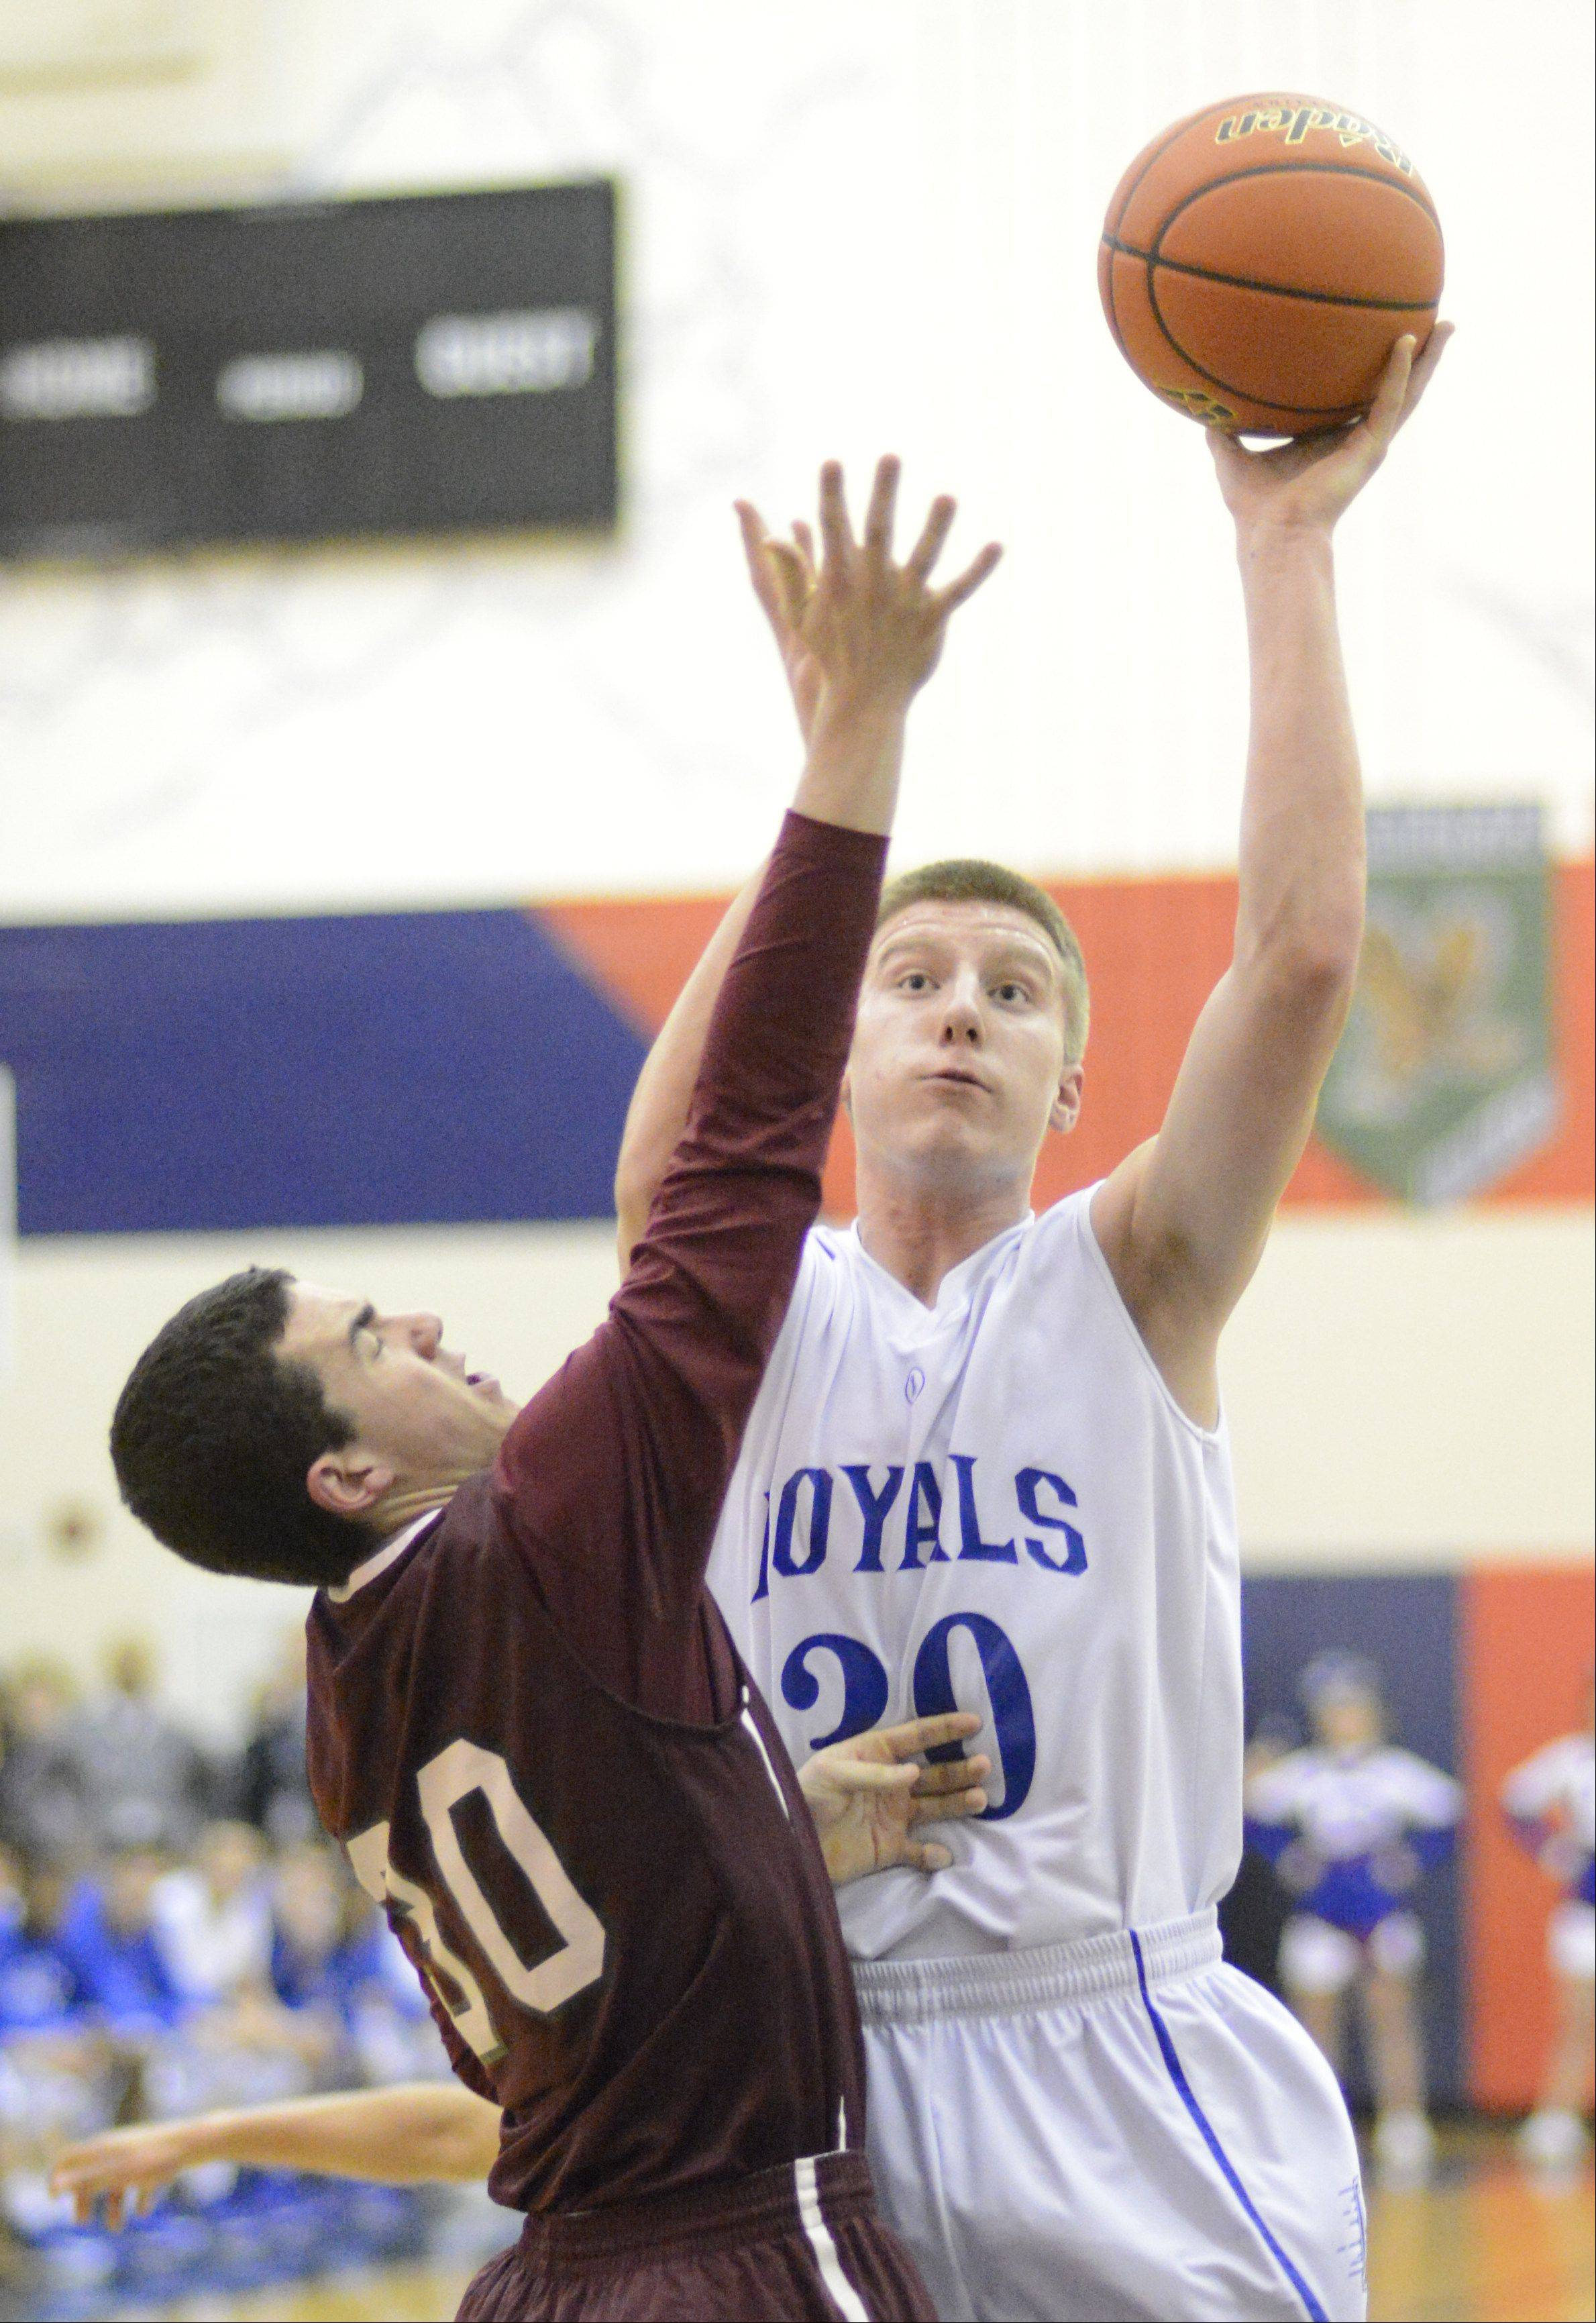 Images from the Larkin vs. Elgin Class 4A regional boys basketball game Wednesday, February 27, 2013.